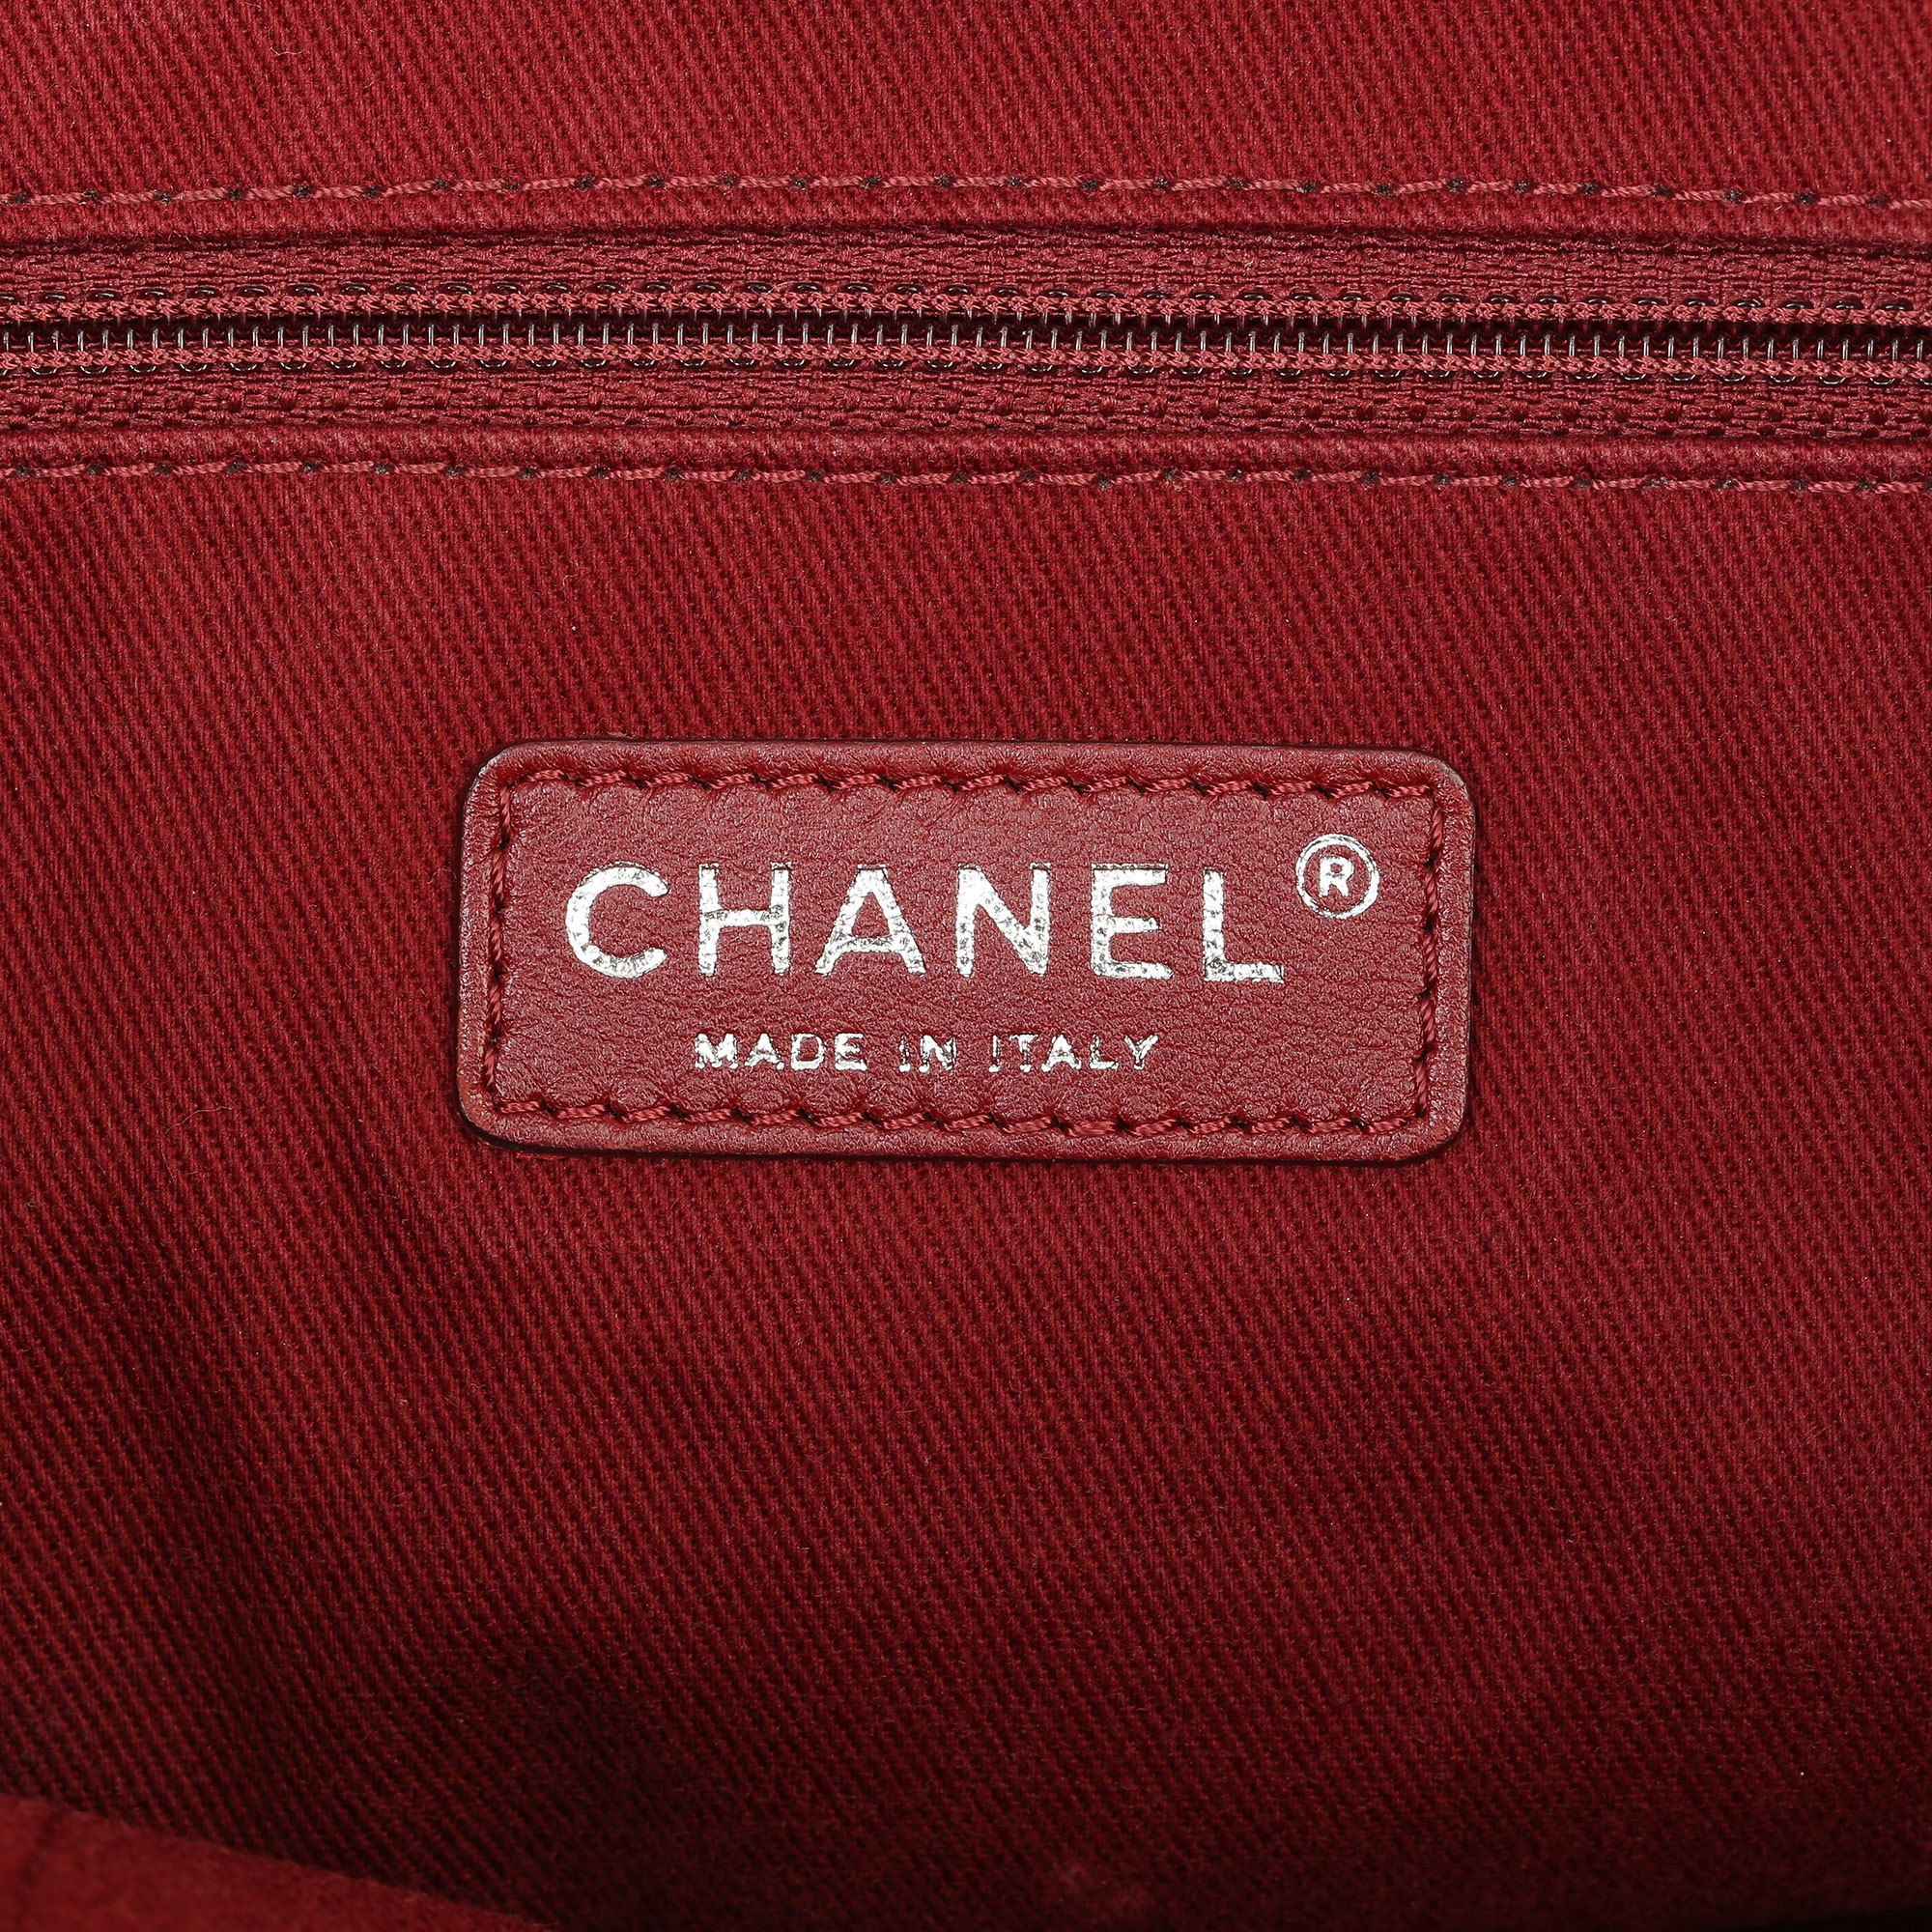 Chanel Red Canvas & Calfskin Leather Small Deauville Tote